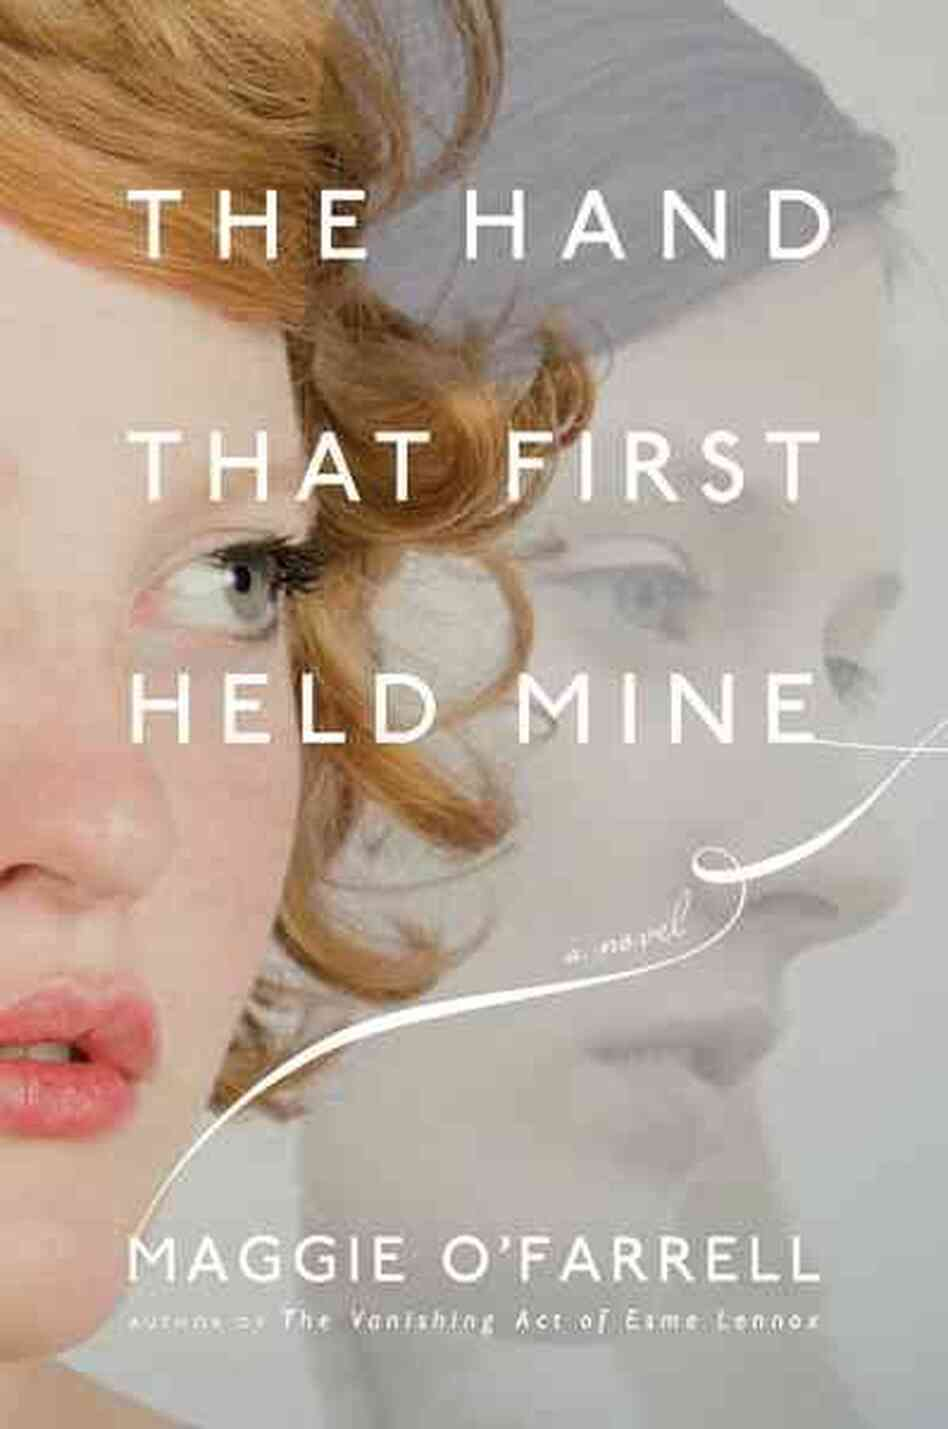 The Hand That First Held Mine